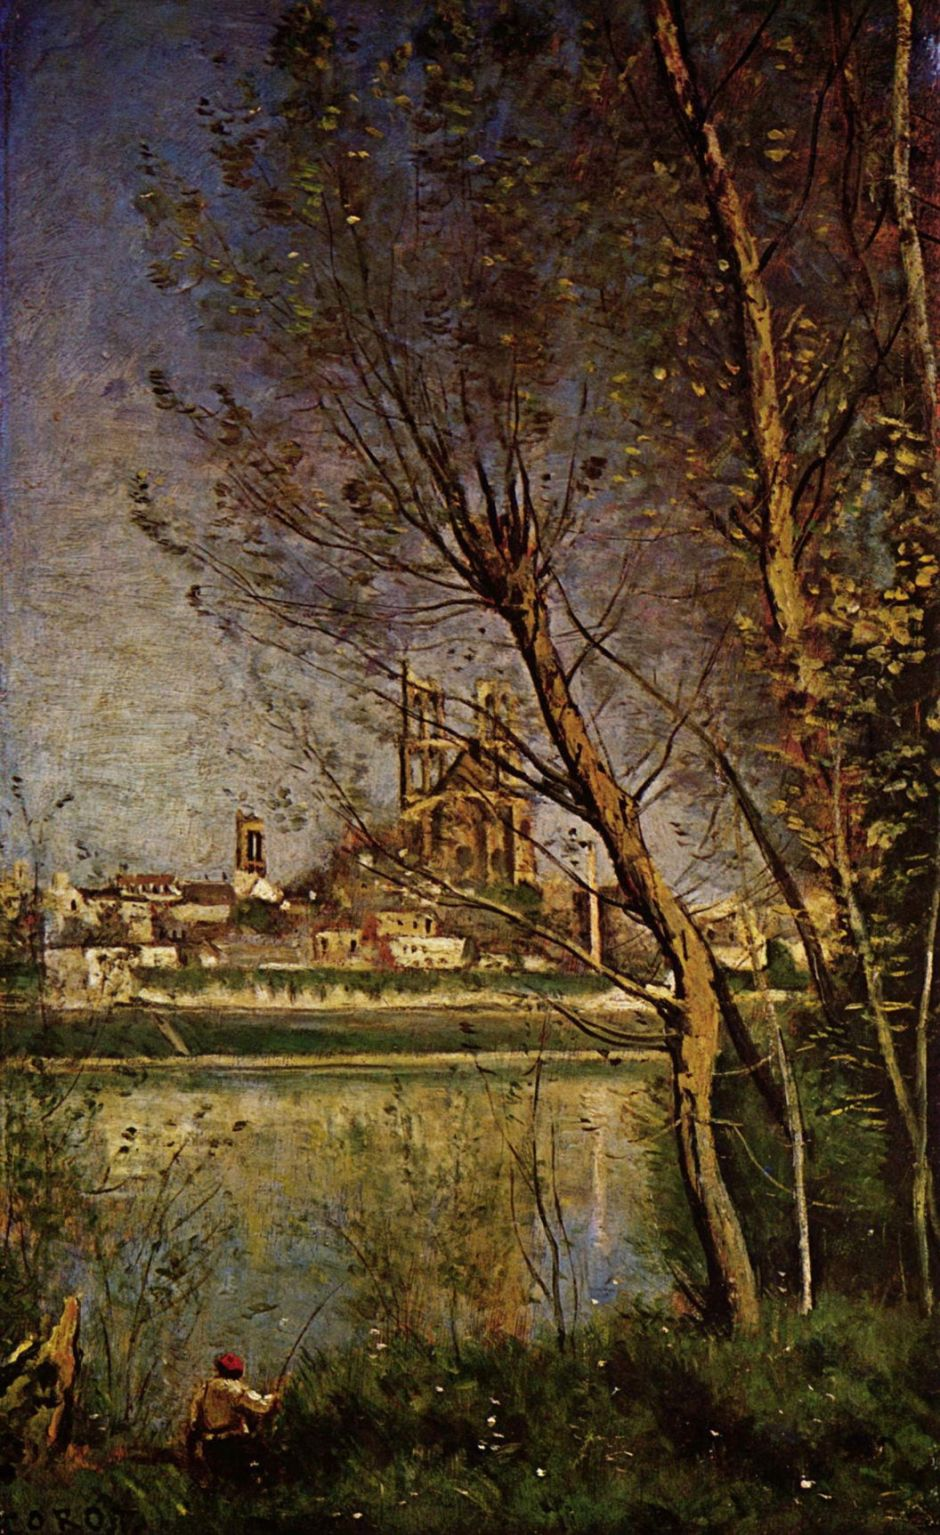 Jean-Baptiste-Camille Corot (1796–1875), Morning, or Cathedral of Mantes, with a Fisherman (c 1865), oil on panel, 52.1 x 32.6 cm, Museum of Fine Arts, Rheims, France. Wikimedia Commons.